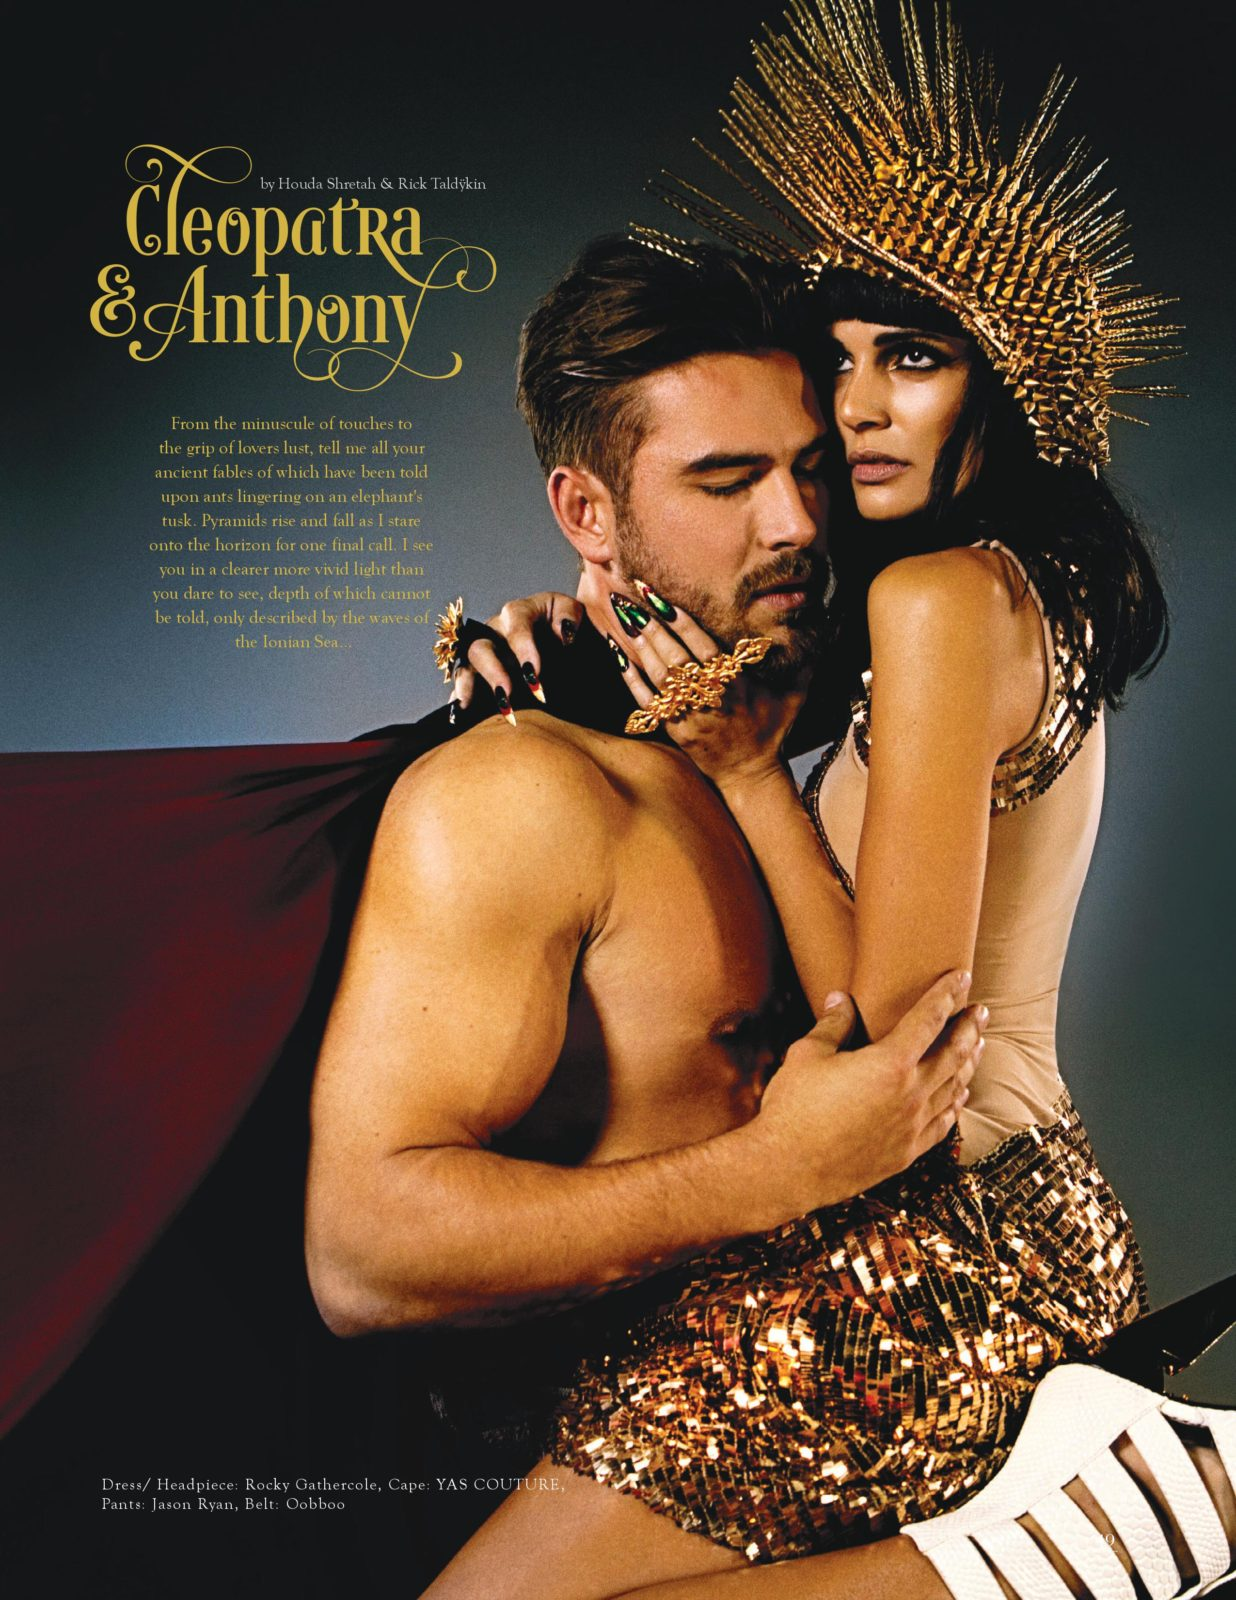 basic magazine love stories marc anthony and cleopatra